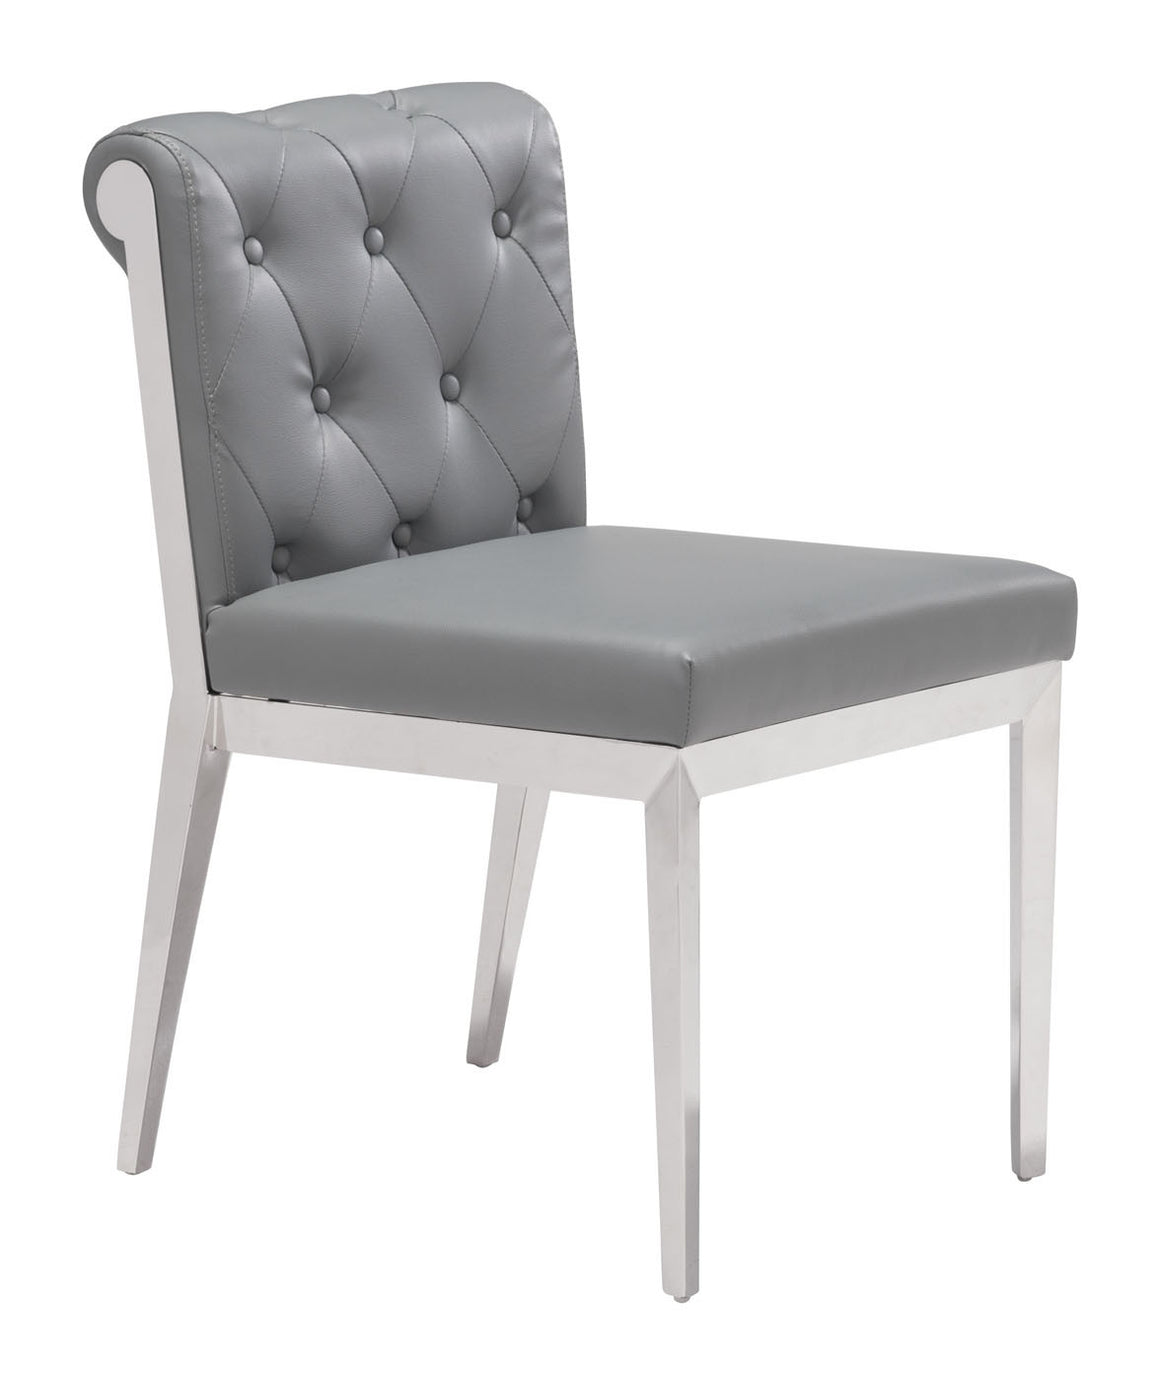 Aris Dining Chair Gray Set of 2